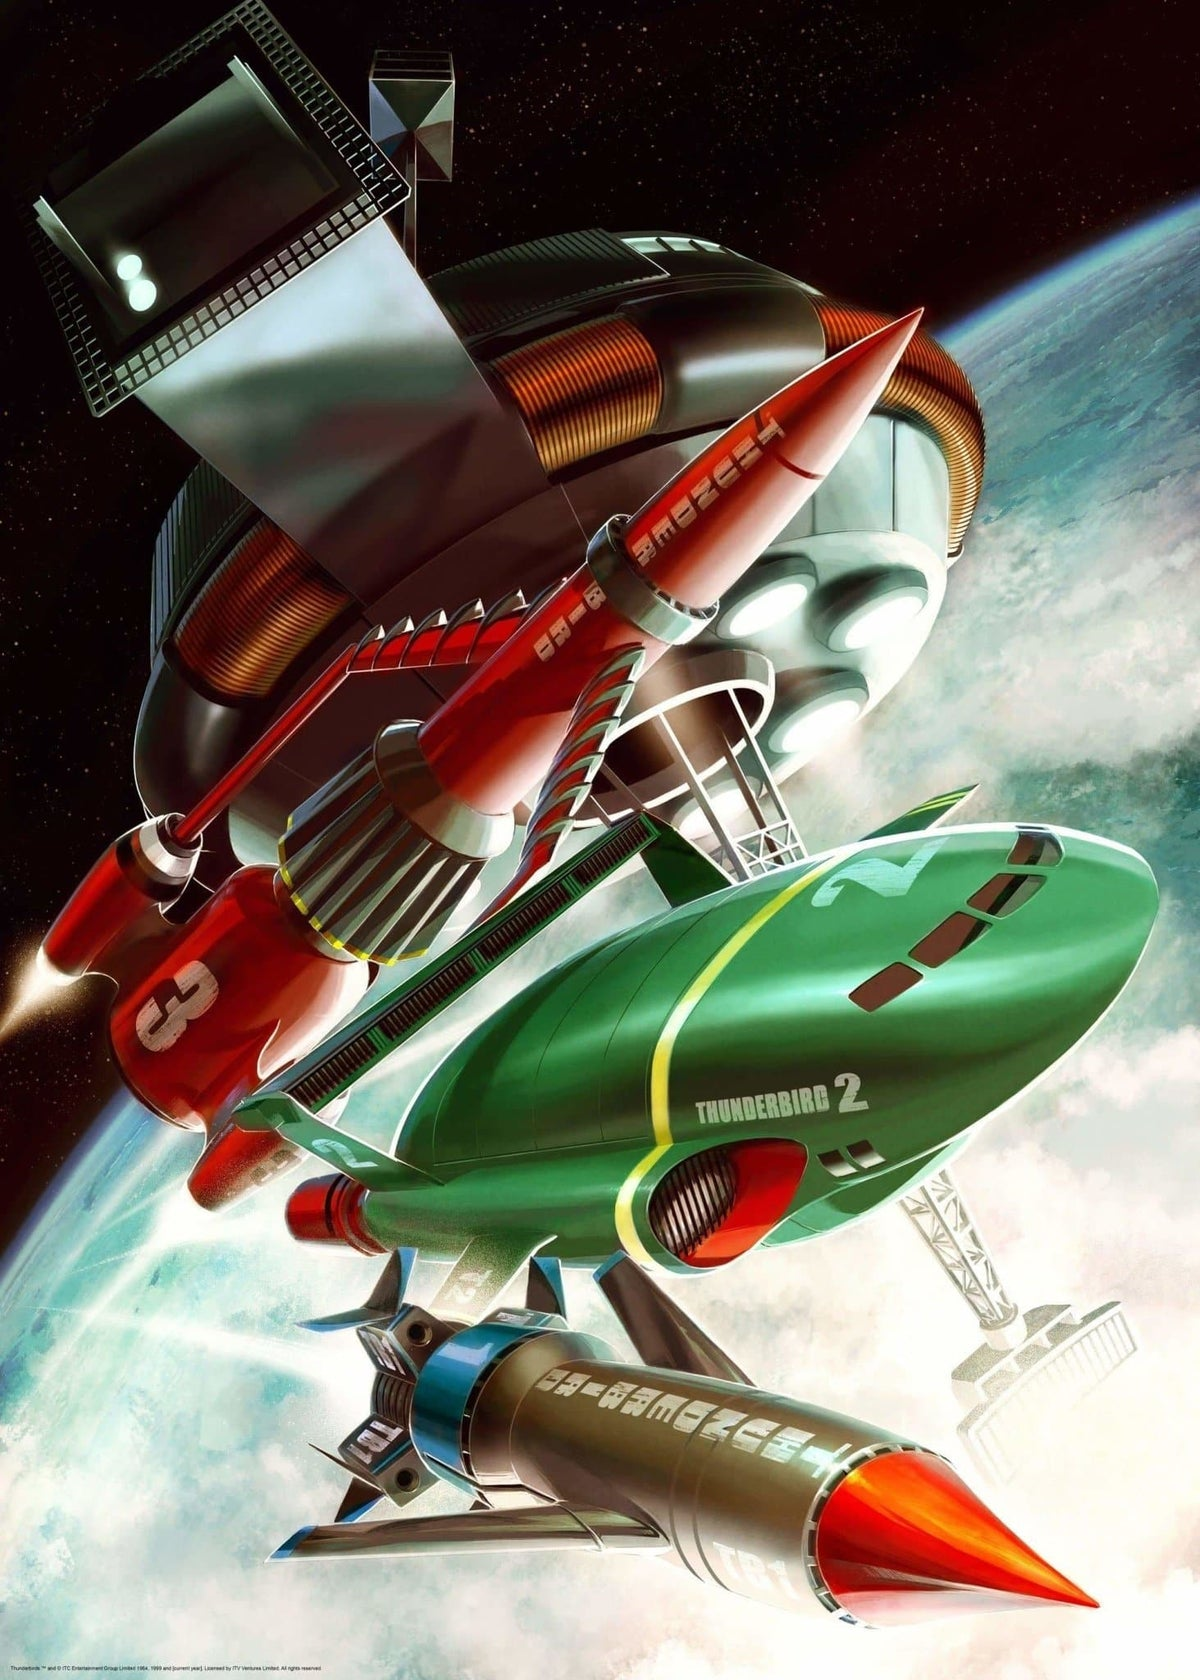 Thunderbirds Print by Jake Lynch - The Gerry Anderson Store